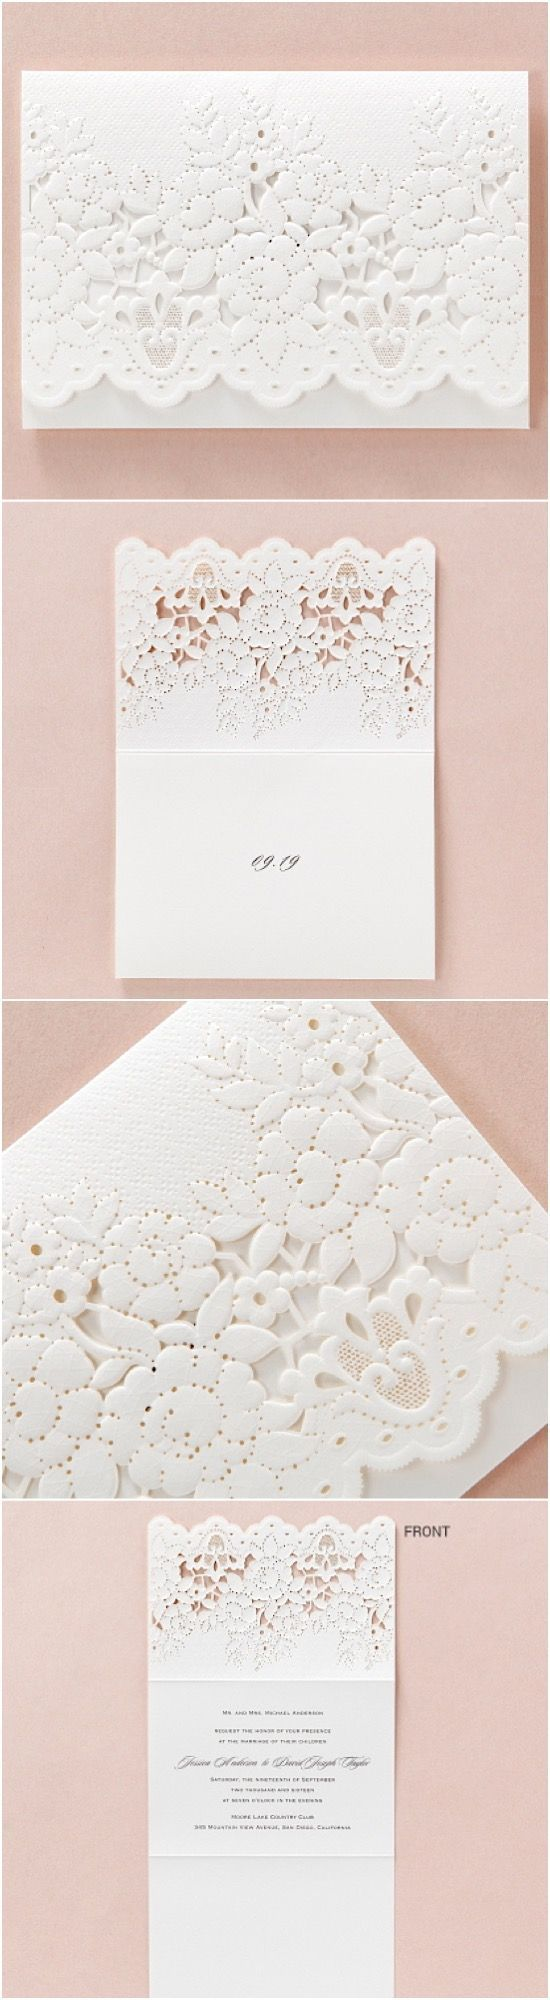 vintage wedding invitation text%0A Lace embossed lasercut wedding stationery by B Wedding Invitations